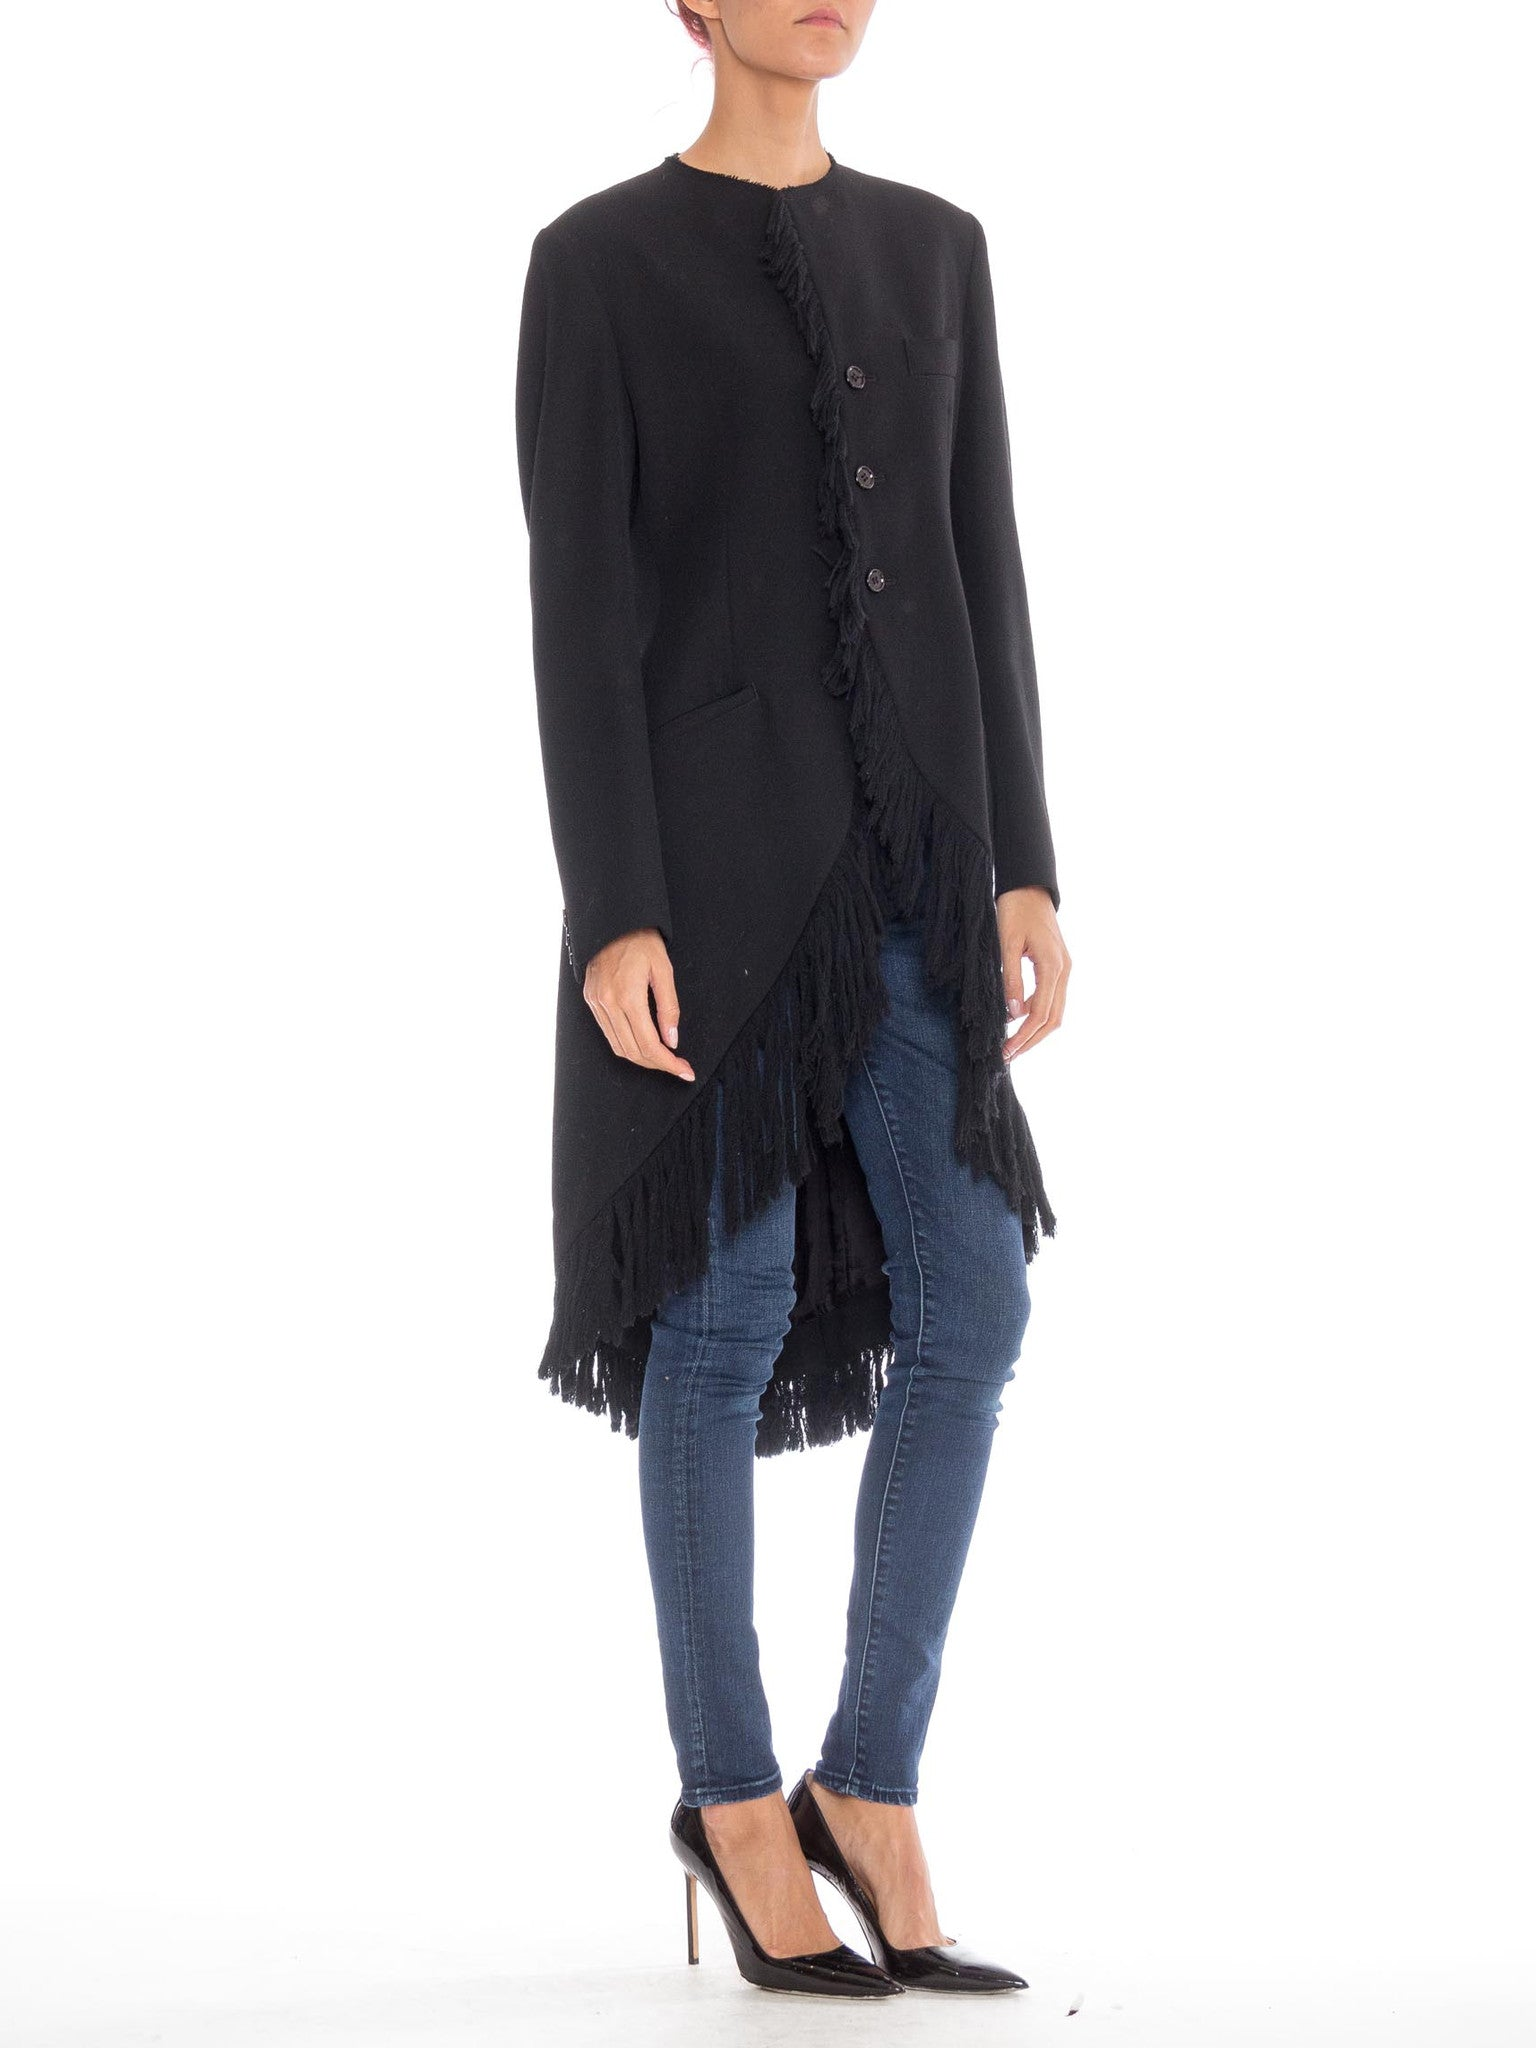 1980S YOHJI YAMAMOTO Black Wool Twill High-Low Tail Coat With Fringe